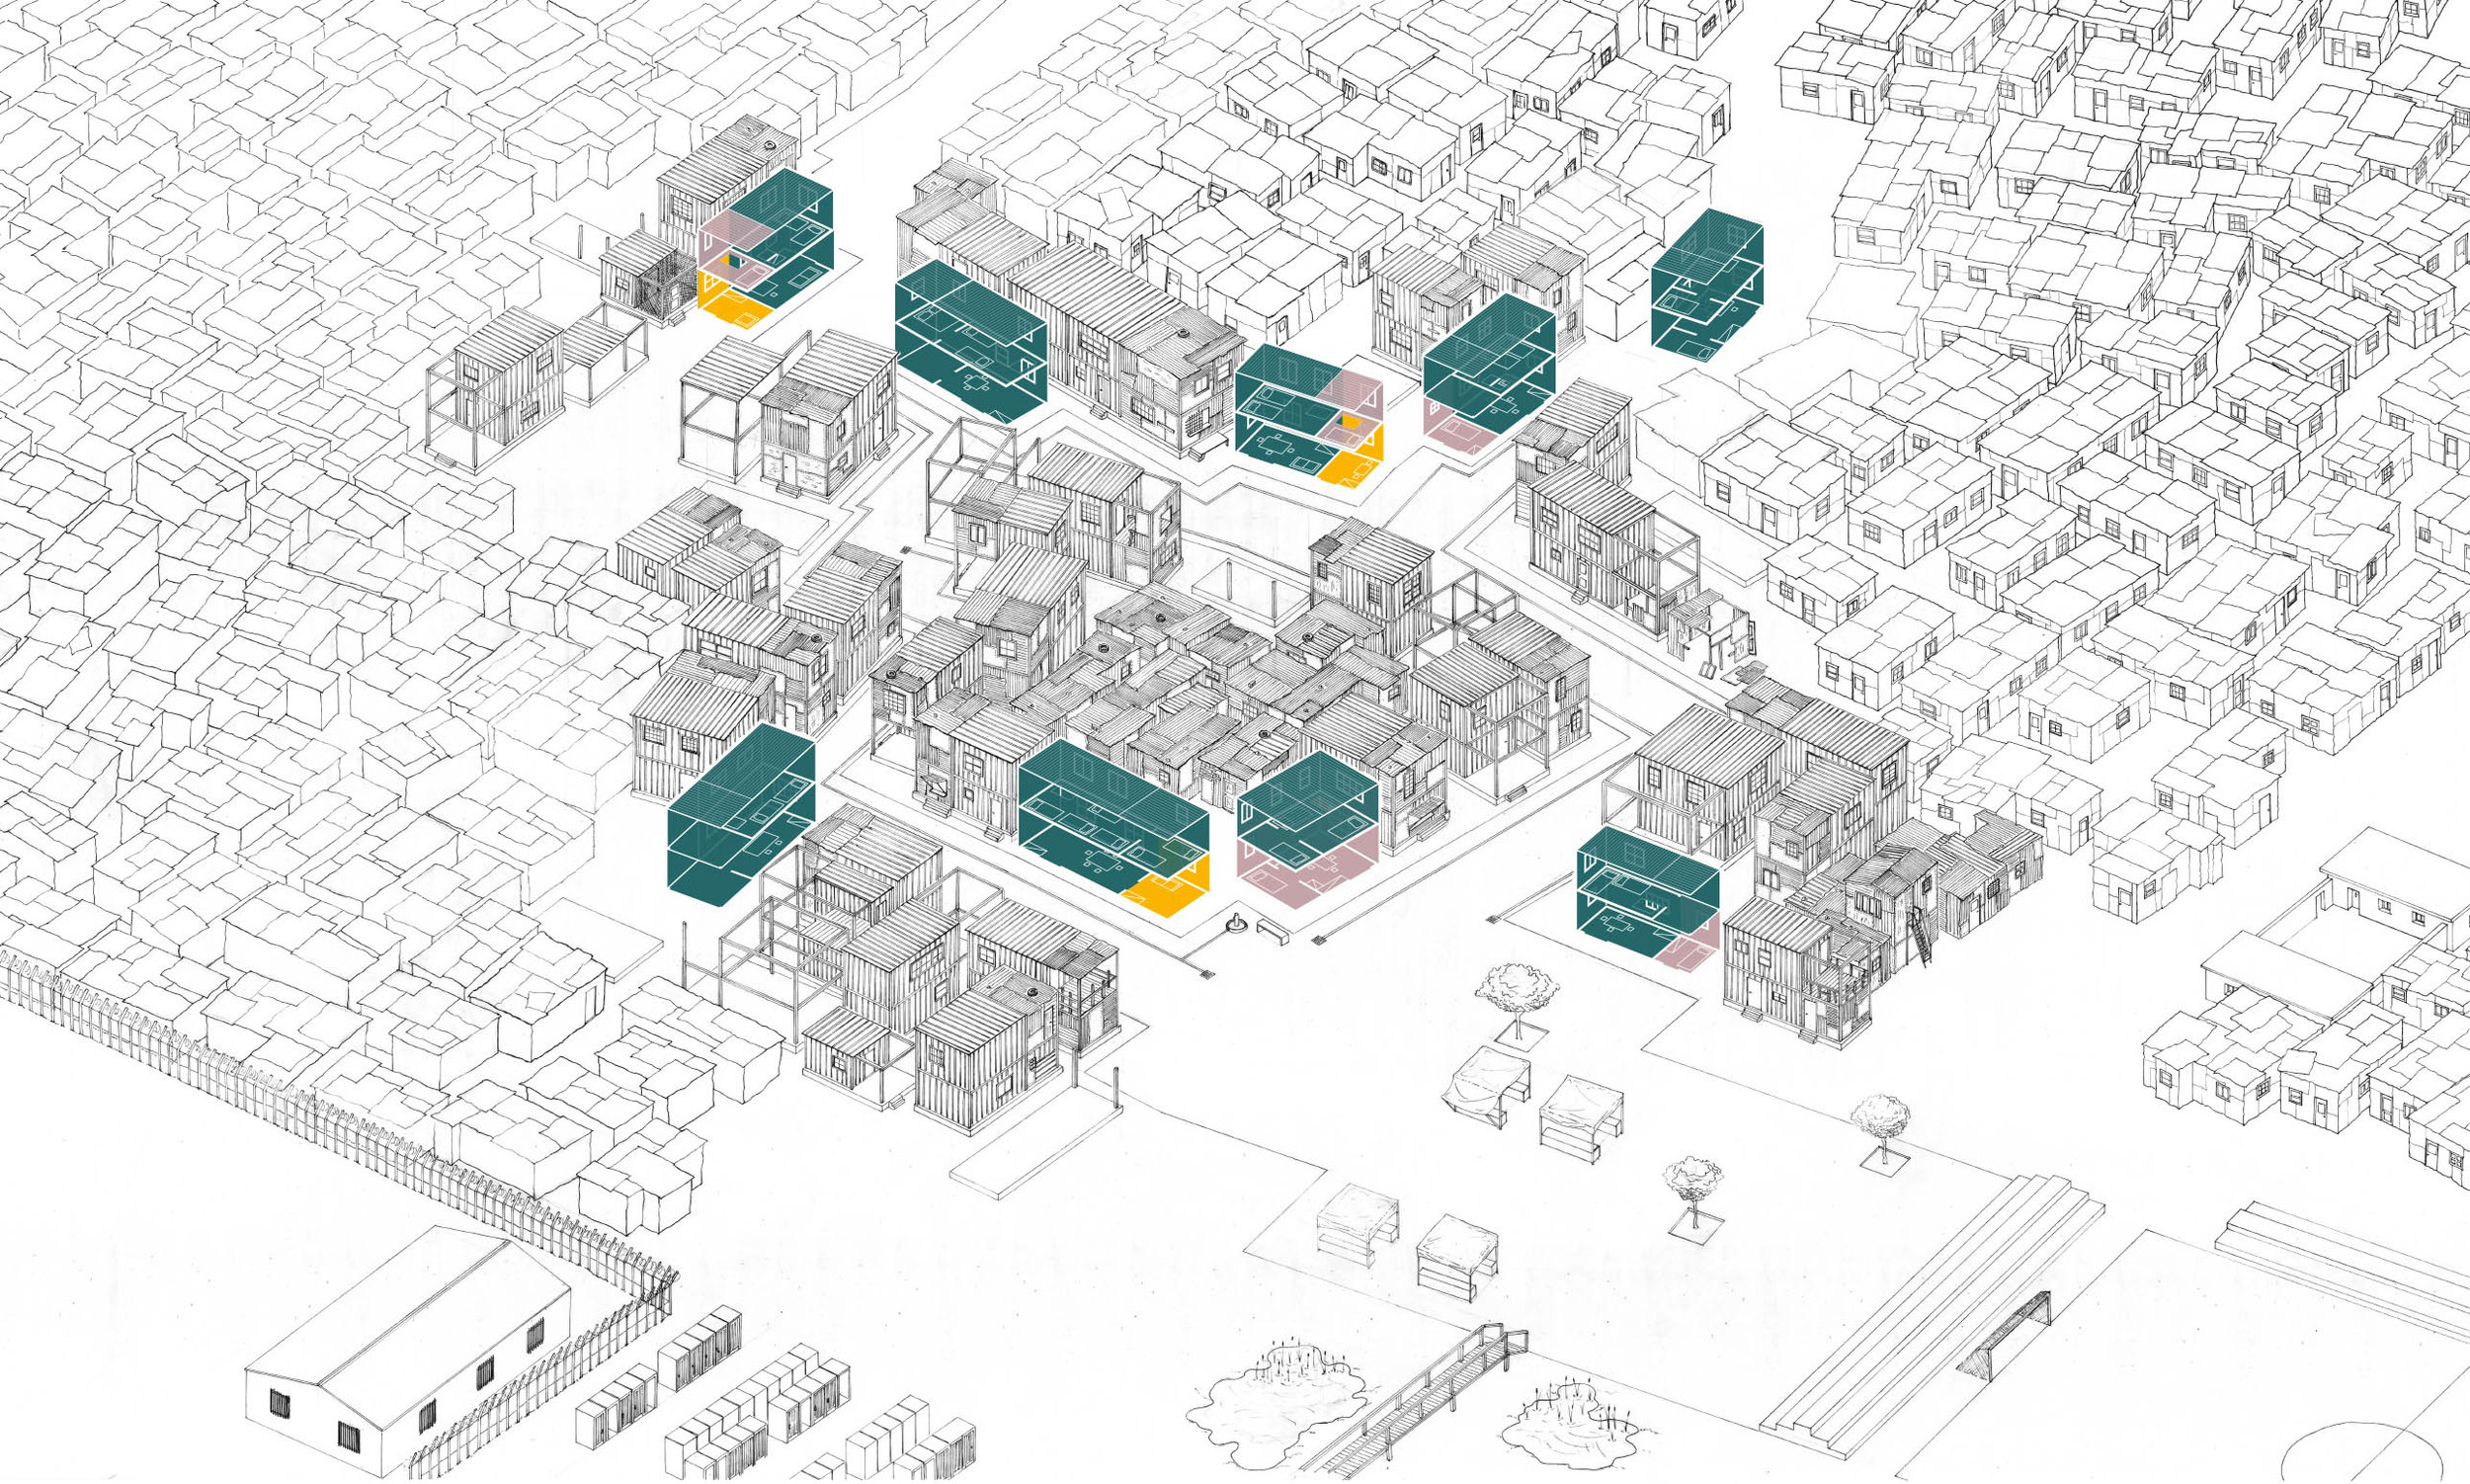 Incremental densification along key access routes opens space for quality public spaces which does not lead to the displacement of residents. Source: Author